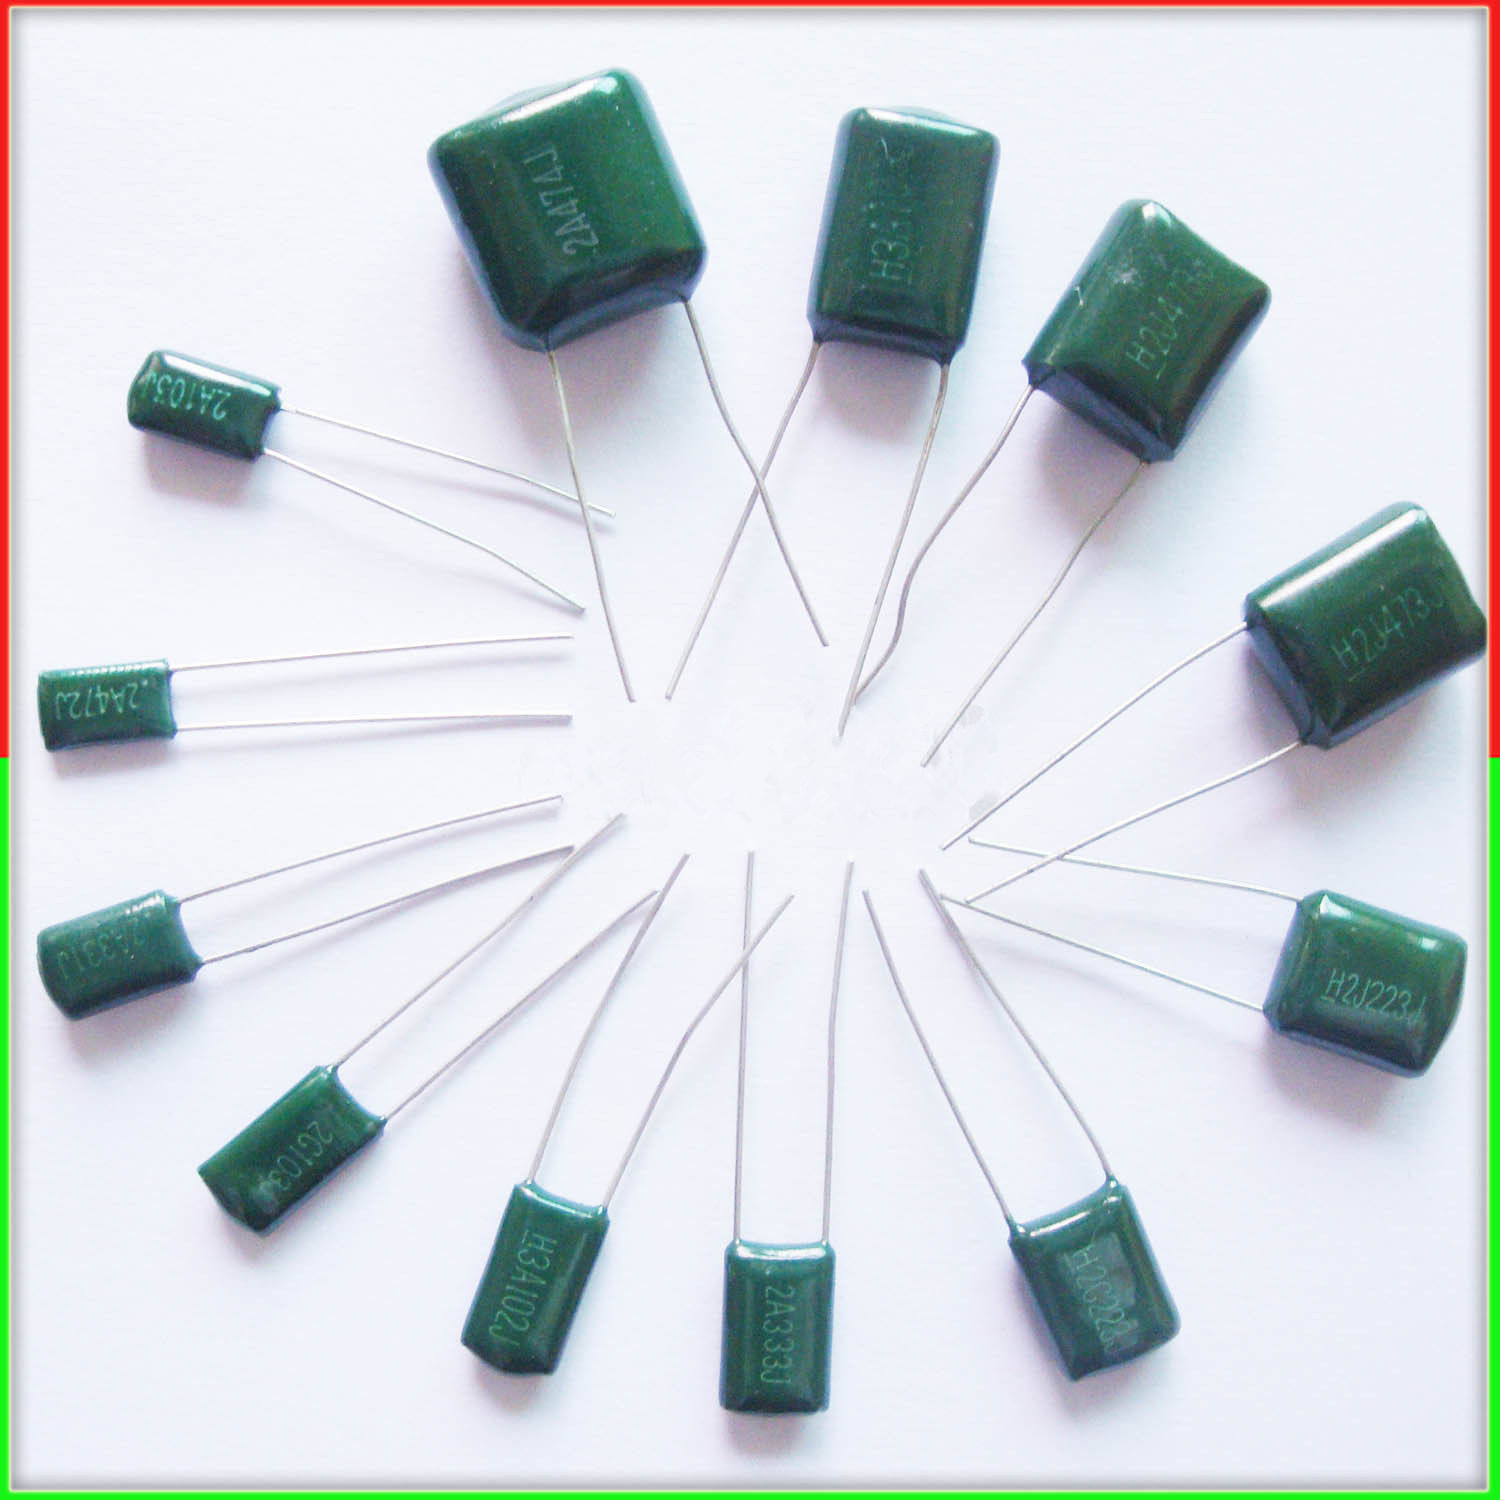 10pcs Mylar Film Capacitor 100V 2A 220pF~0.47uF 5% (2A221J~2A474J) Polyester Film Capacitor